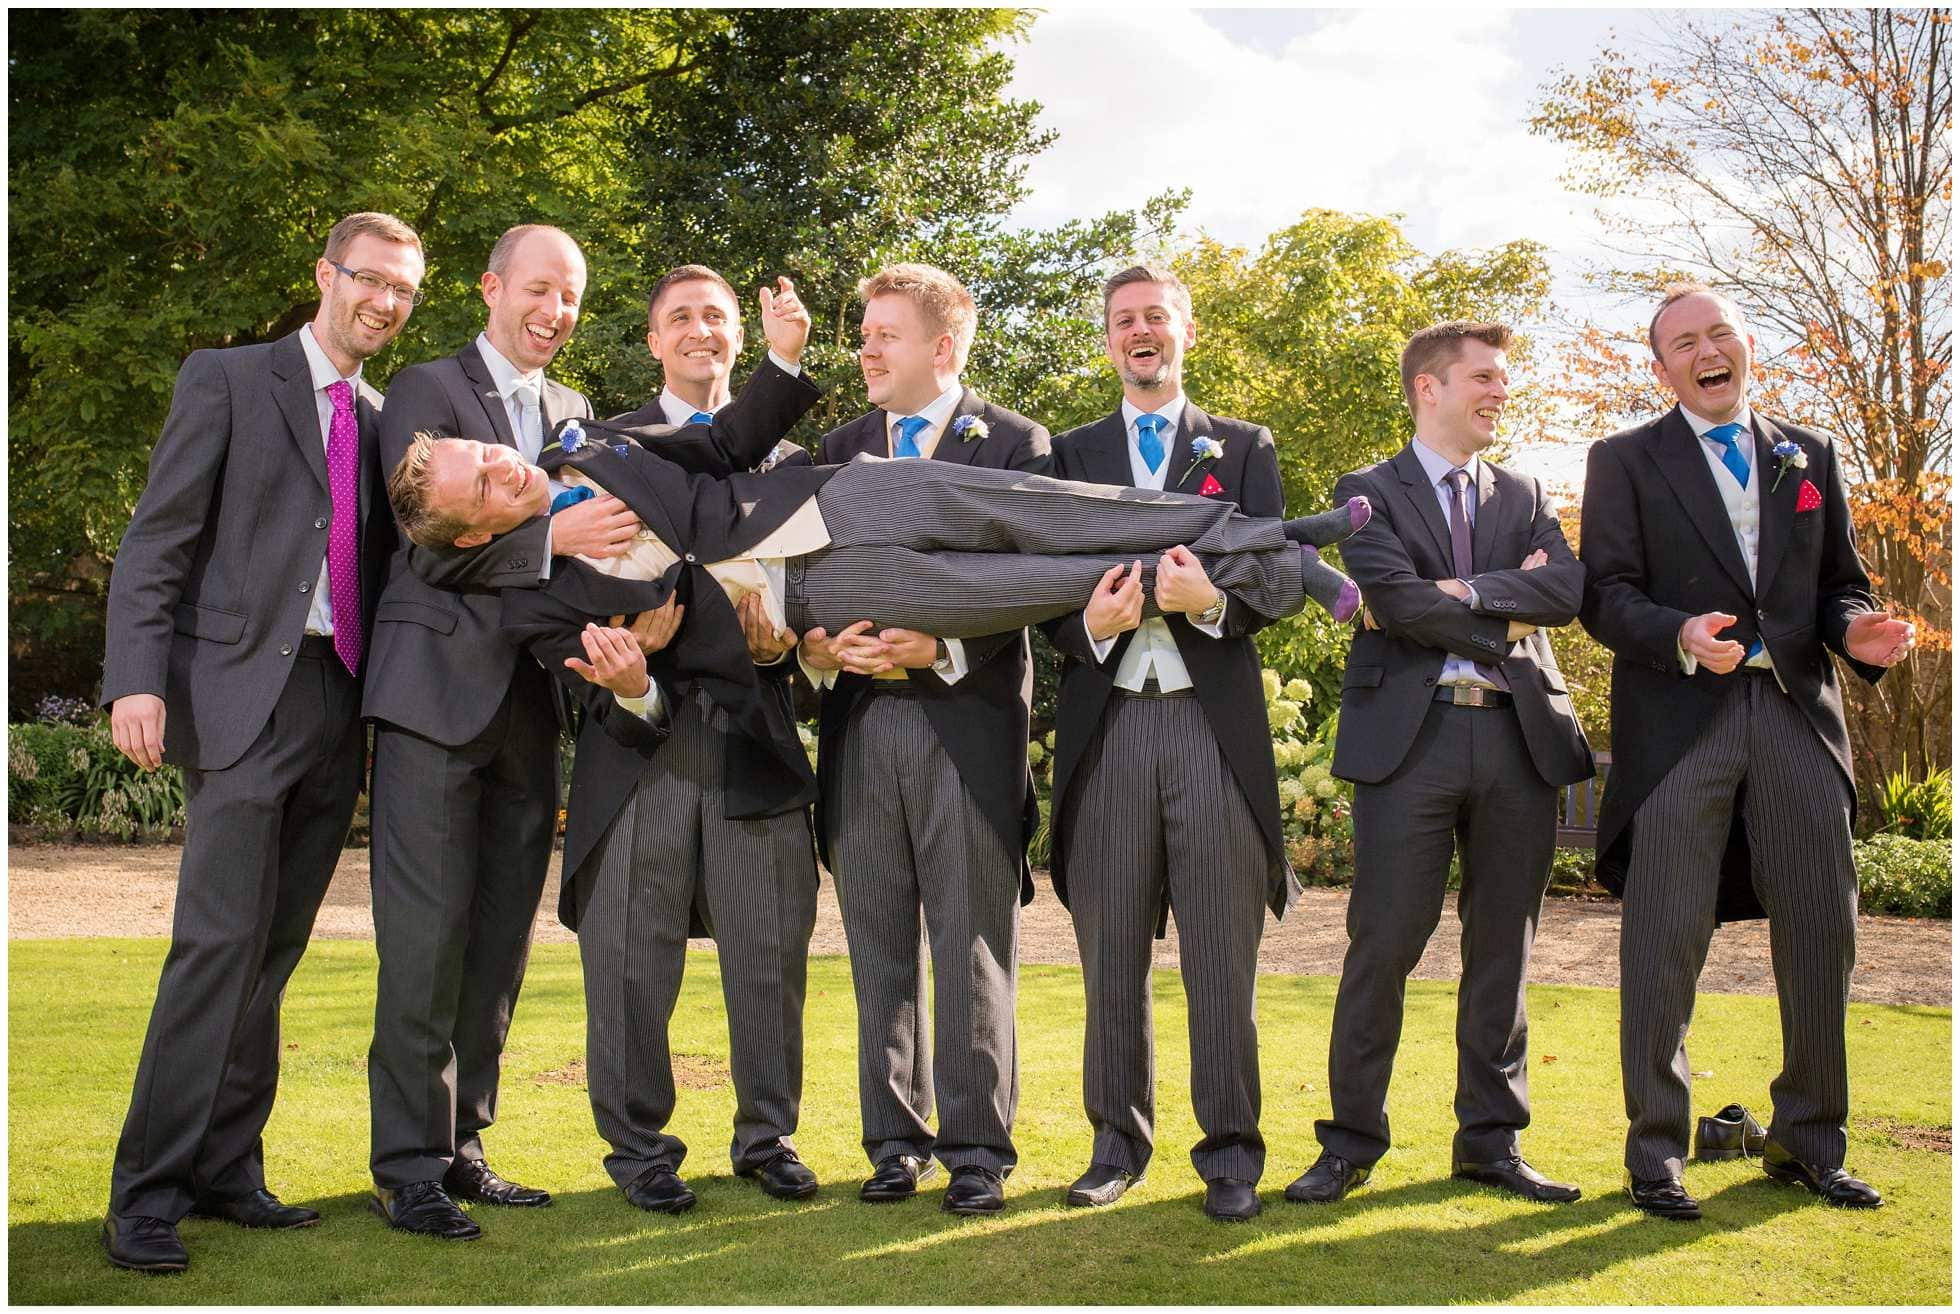 Christ Church College grads doing what they do best at a wedding!